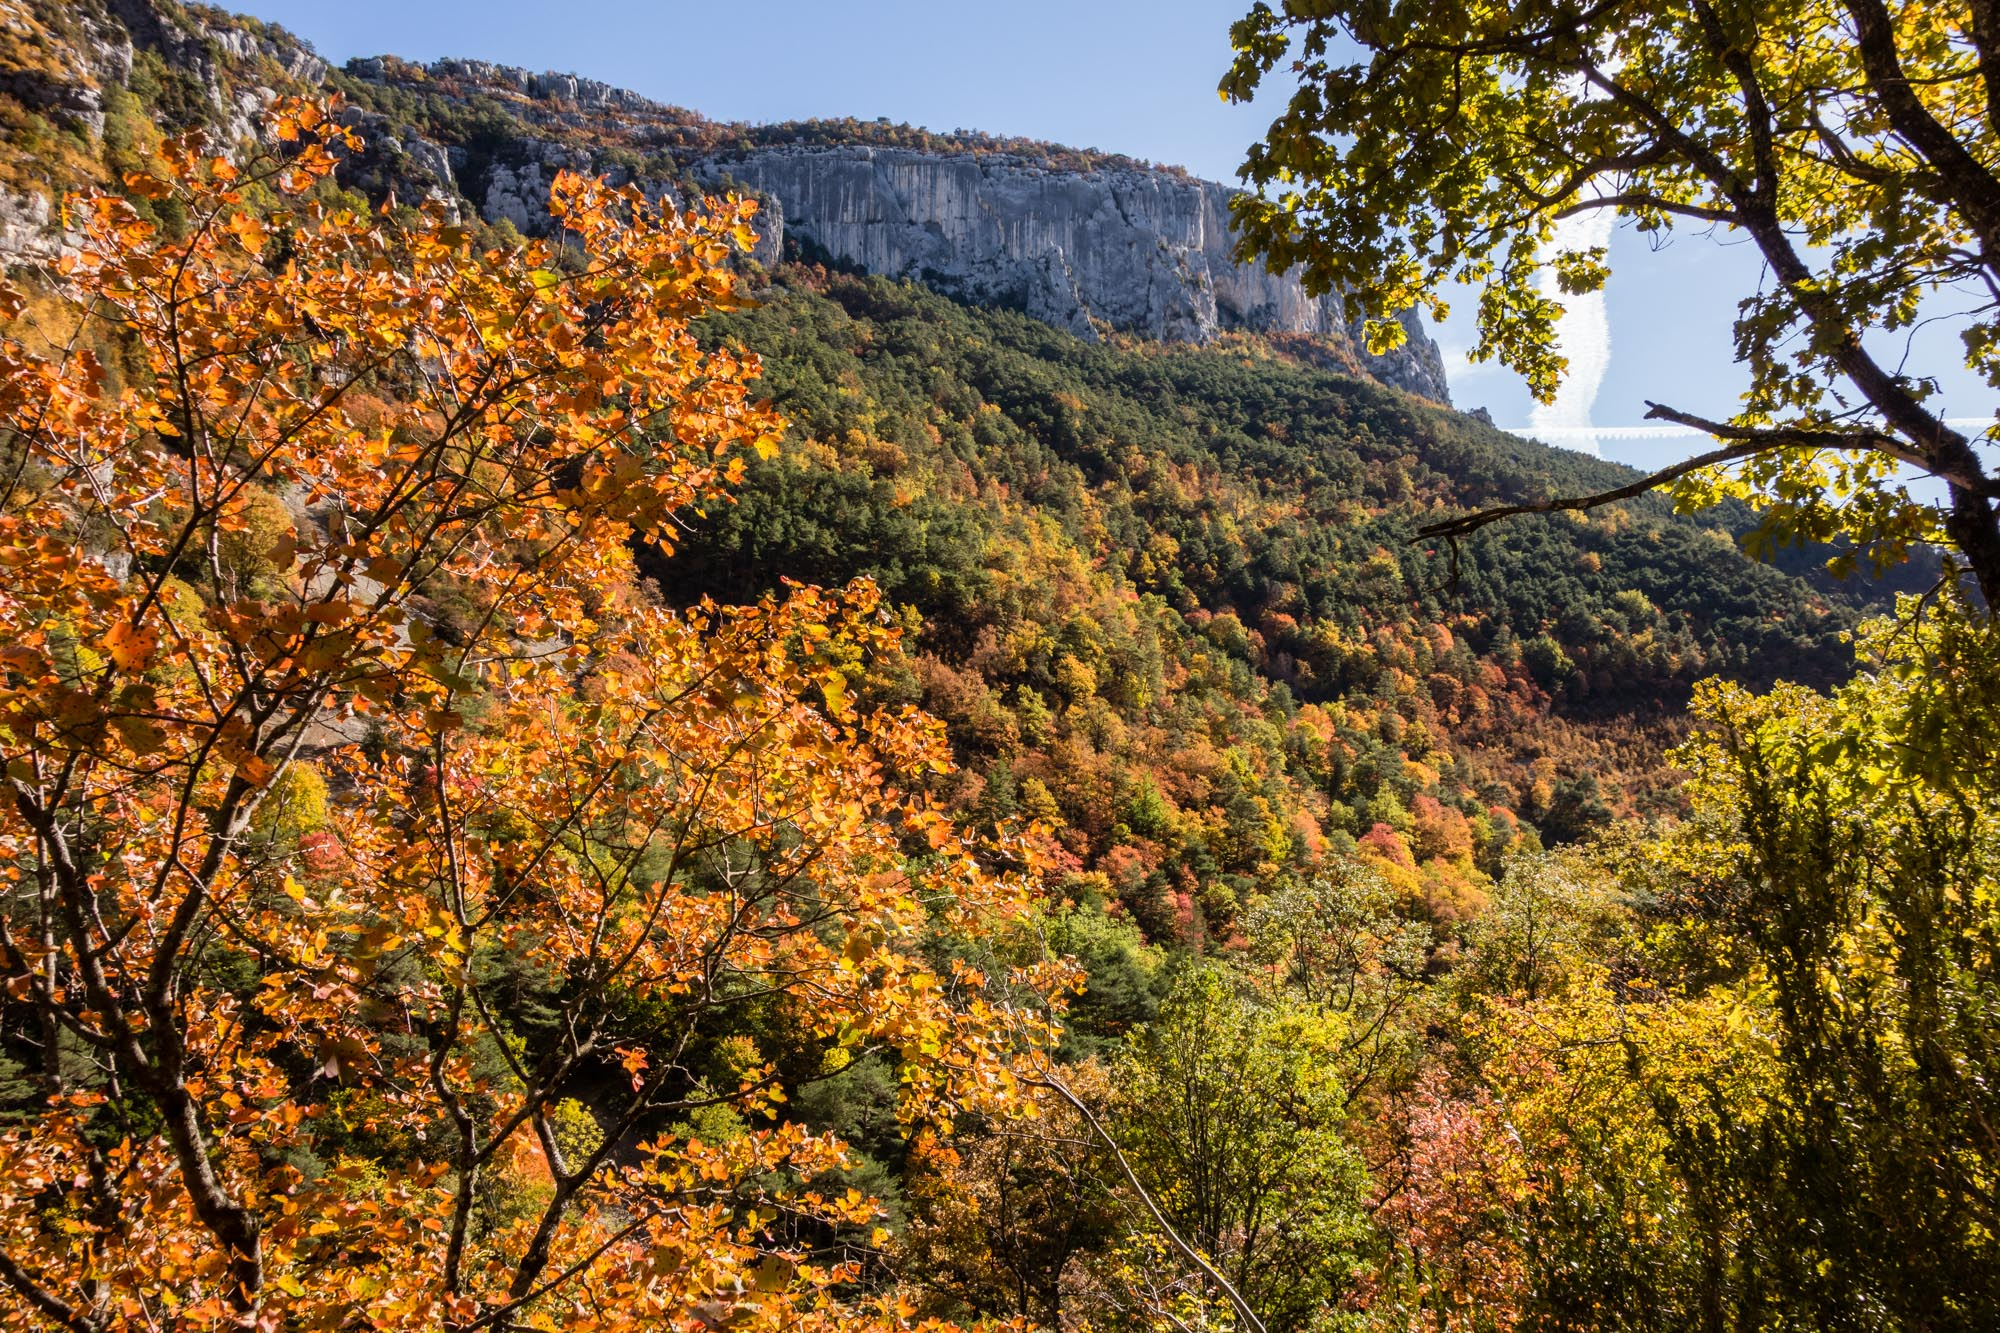 Stunning autumnal colours in the gorge, en route to the base of La Demande